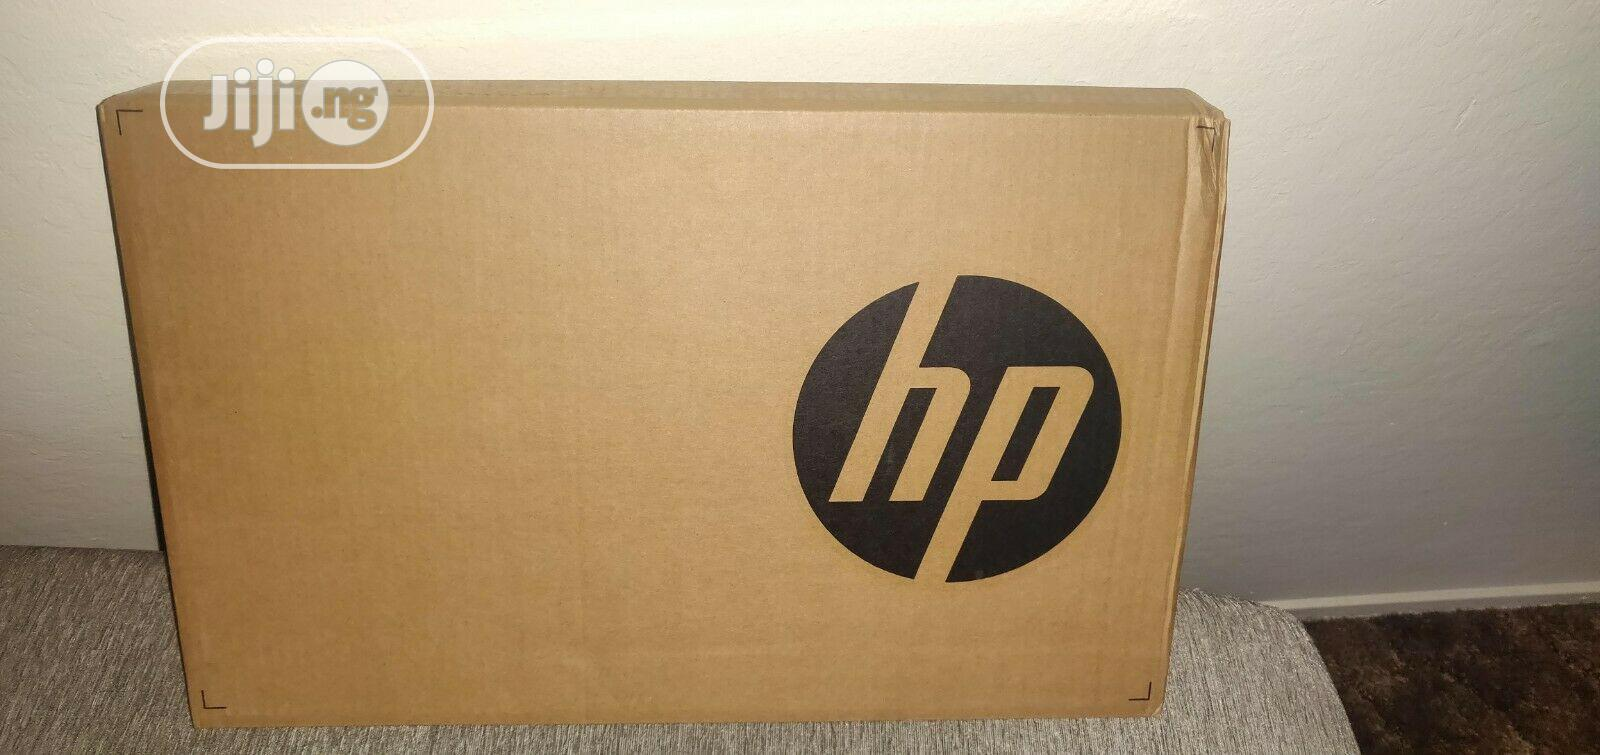 New Laptop HP Envy Ultrabook 4 12GB Intel Core i7 HDD 1T | Laptops & Computers for sale in Egor, Edo State, Nigeria